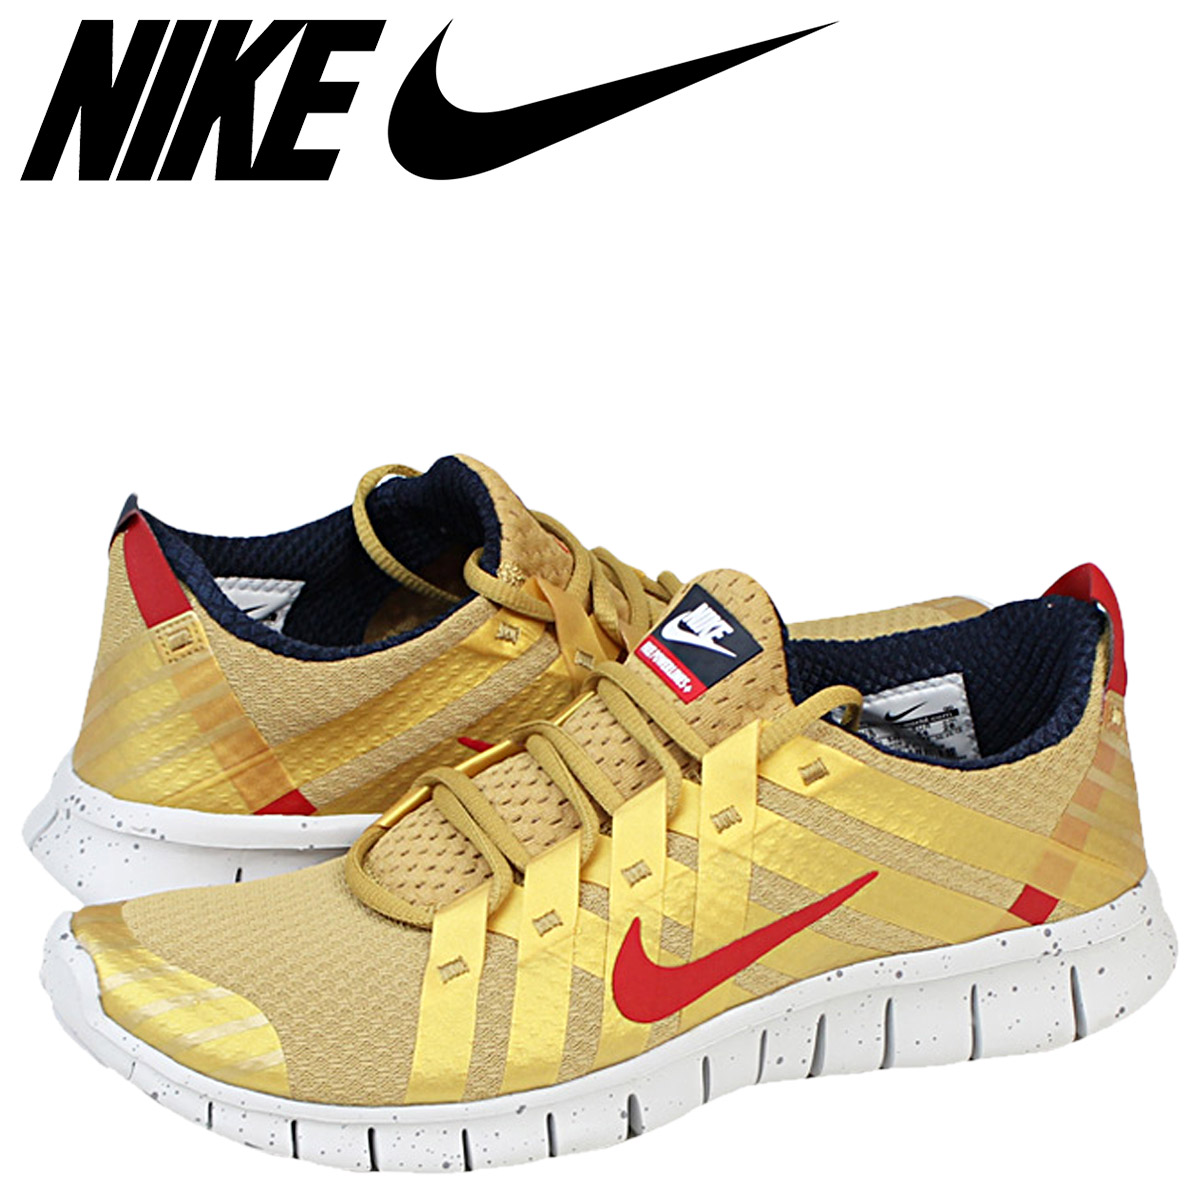 nike olympic shoes yellow